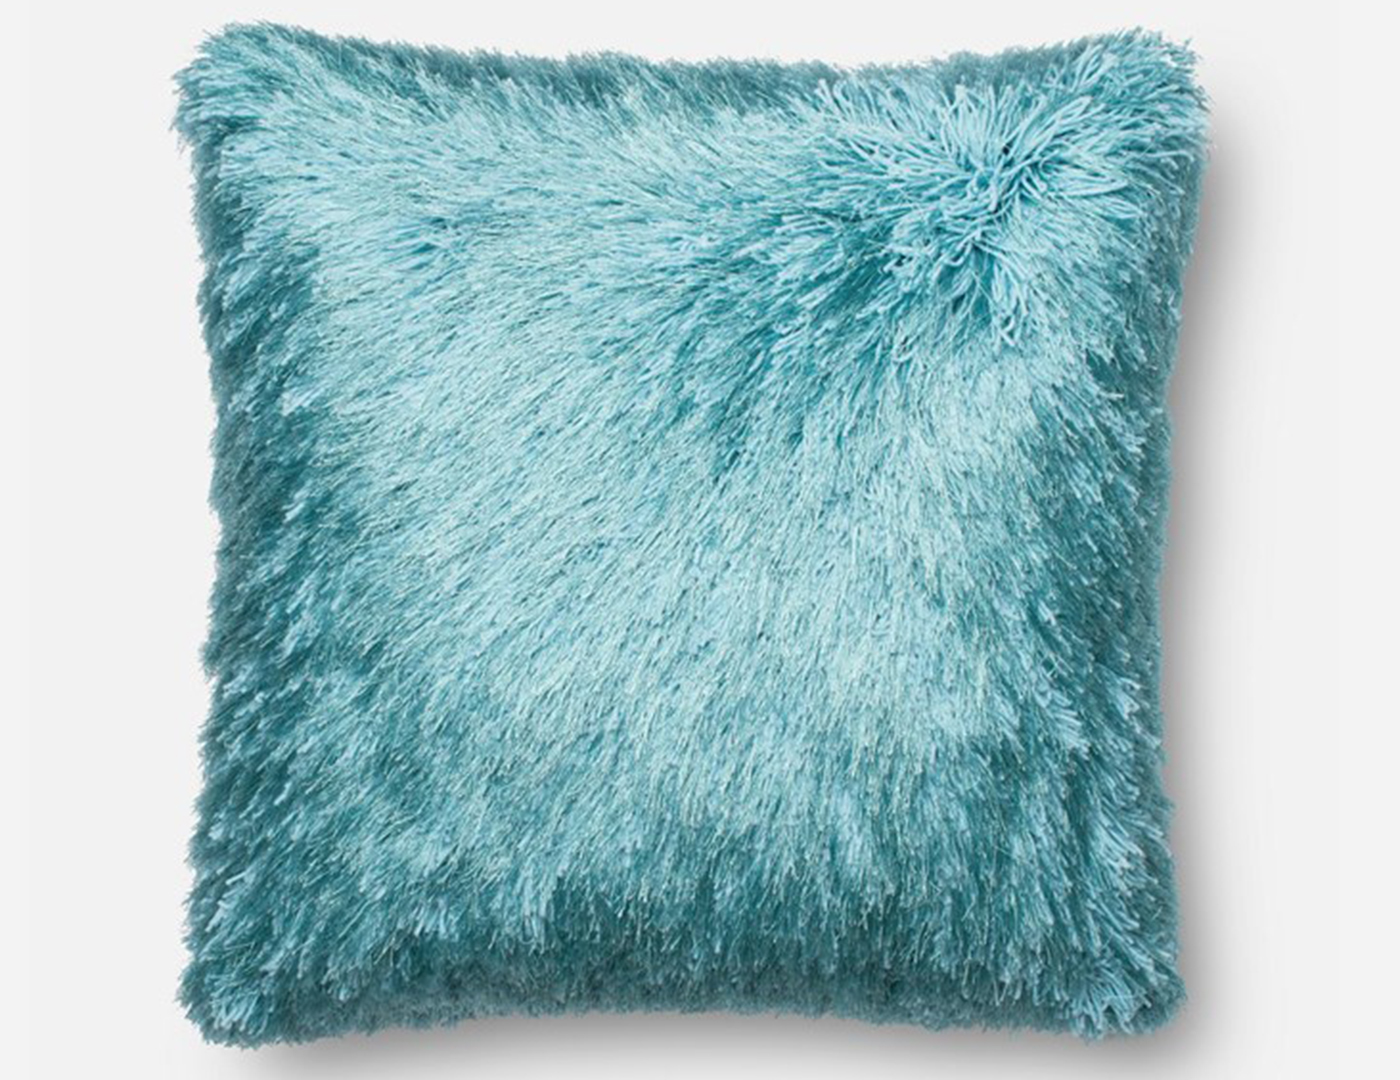 bradford cotton smooth pillows wayfair dark keyword throw teal pillow